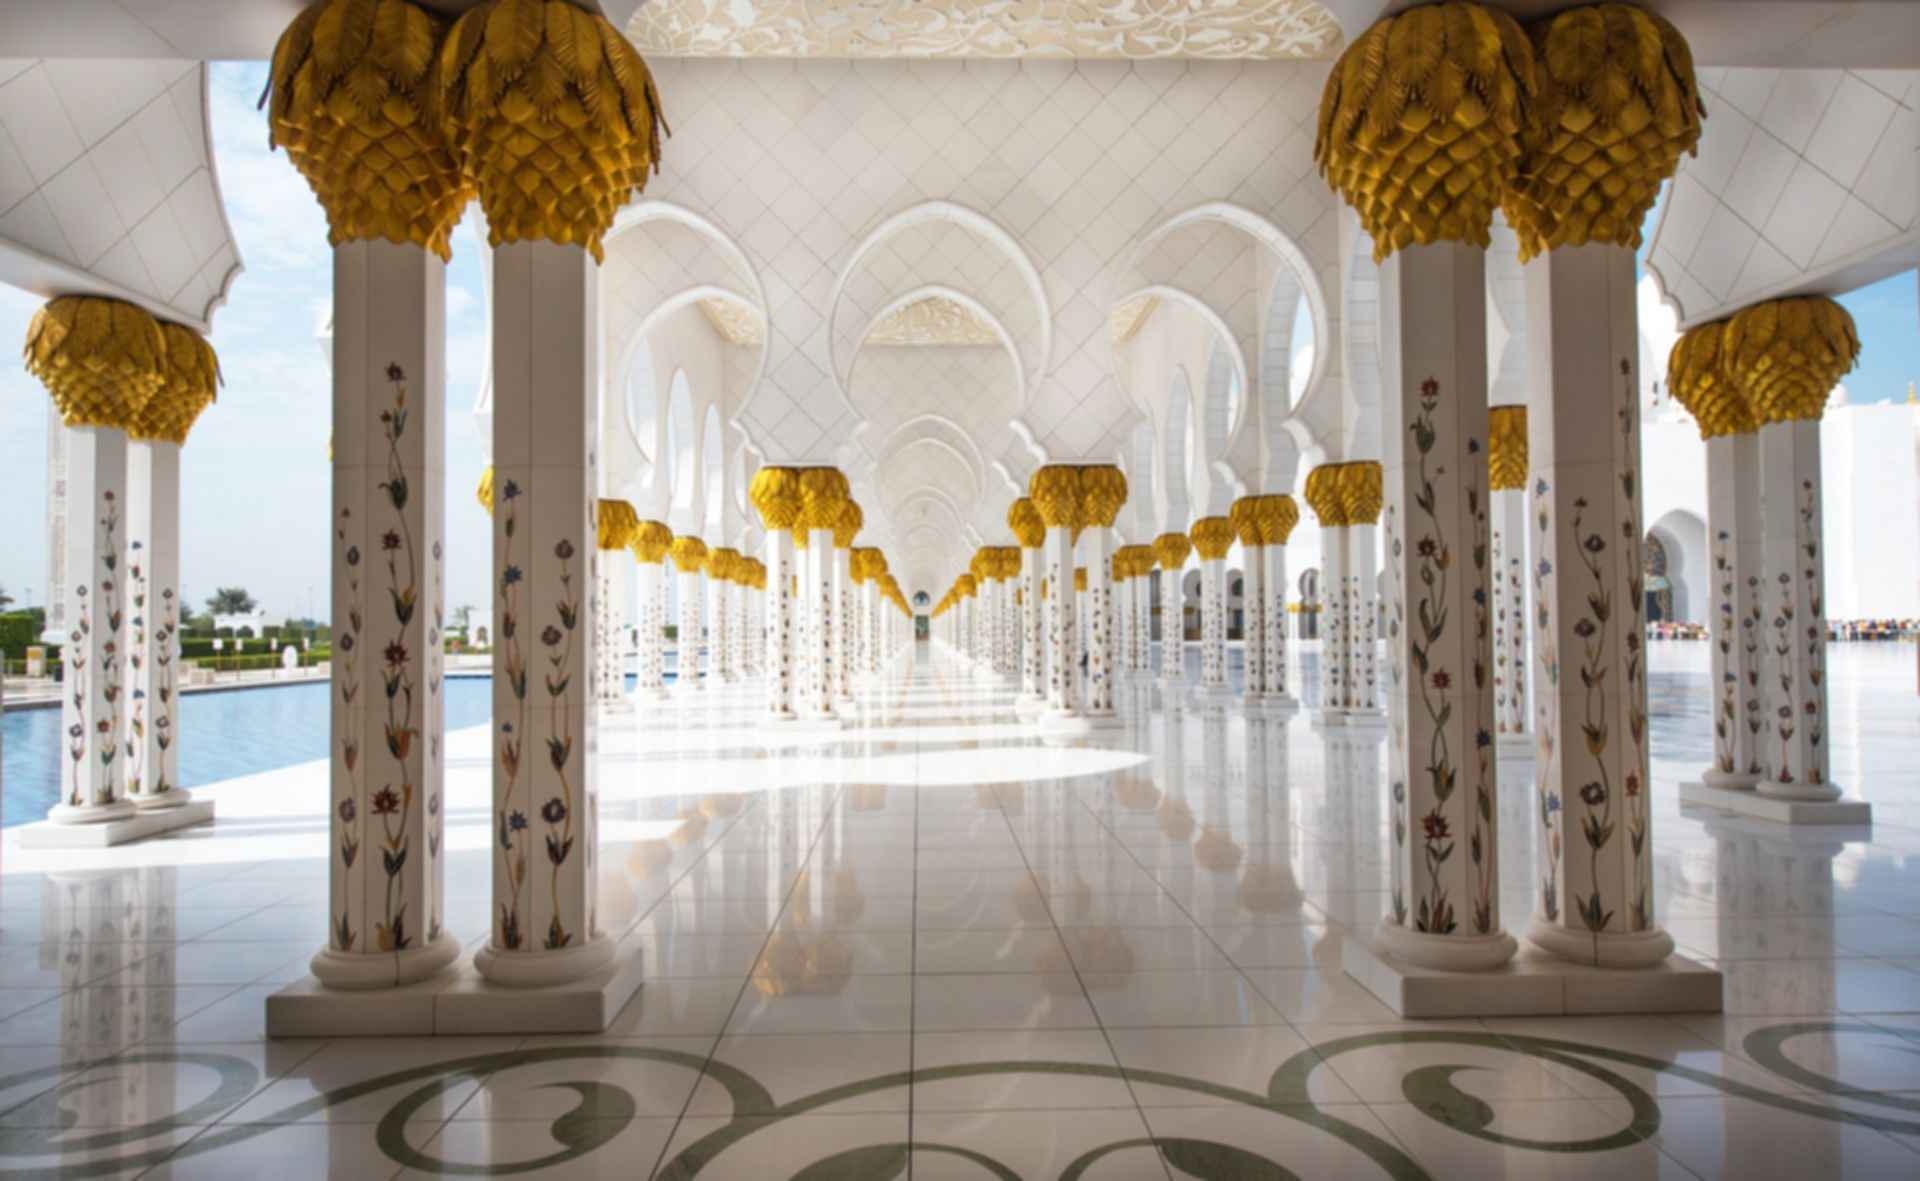 Sheikh Zayed Grand Mosque - Columns